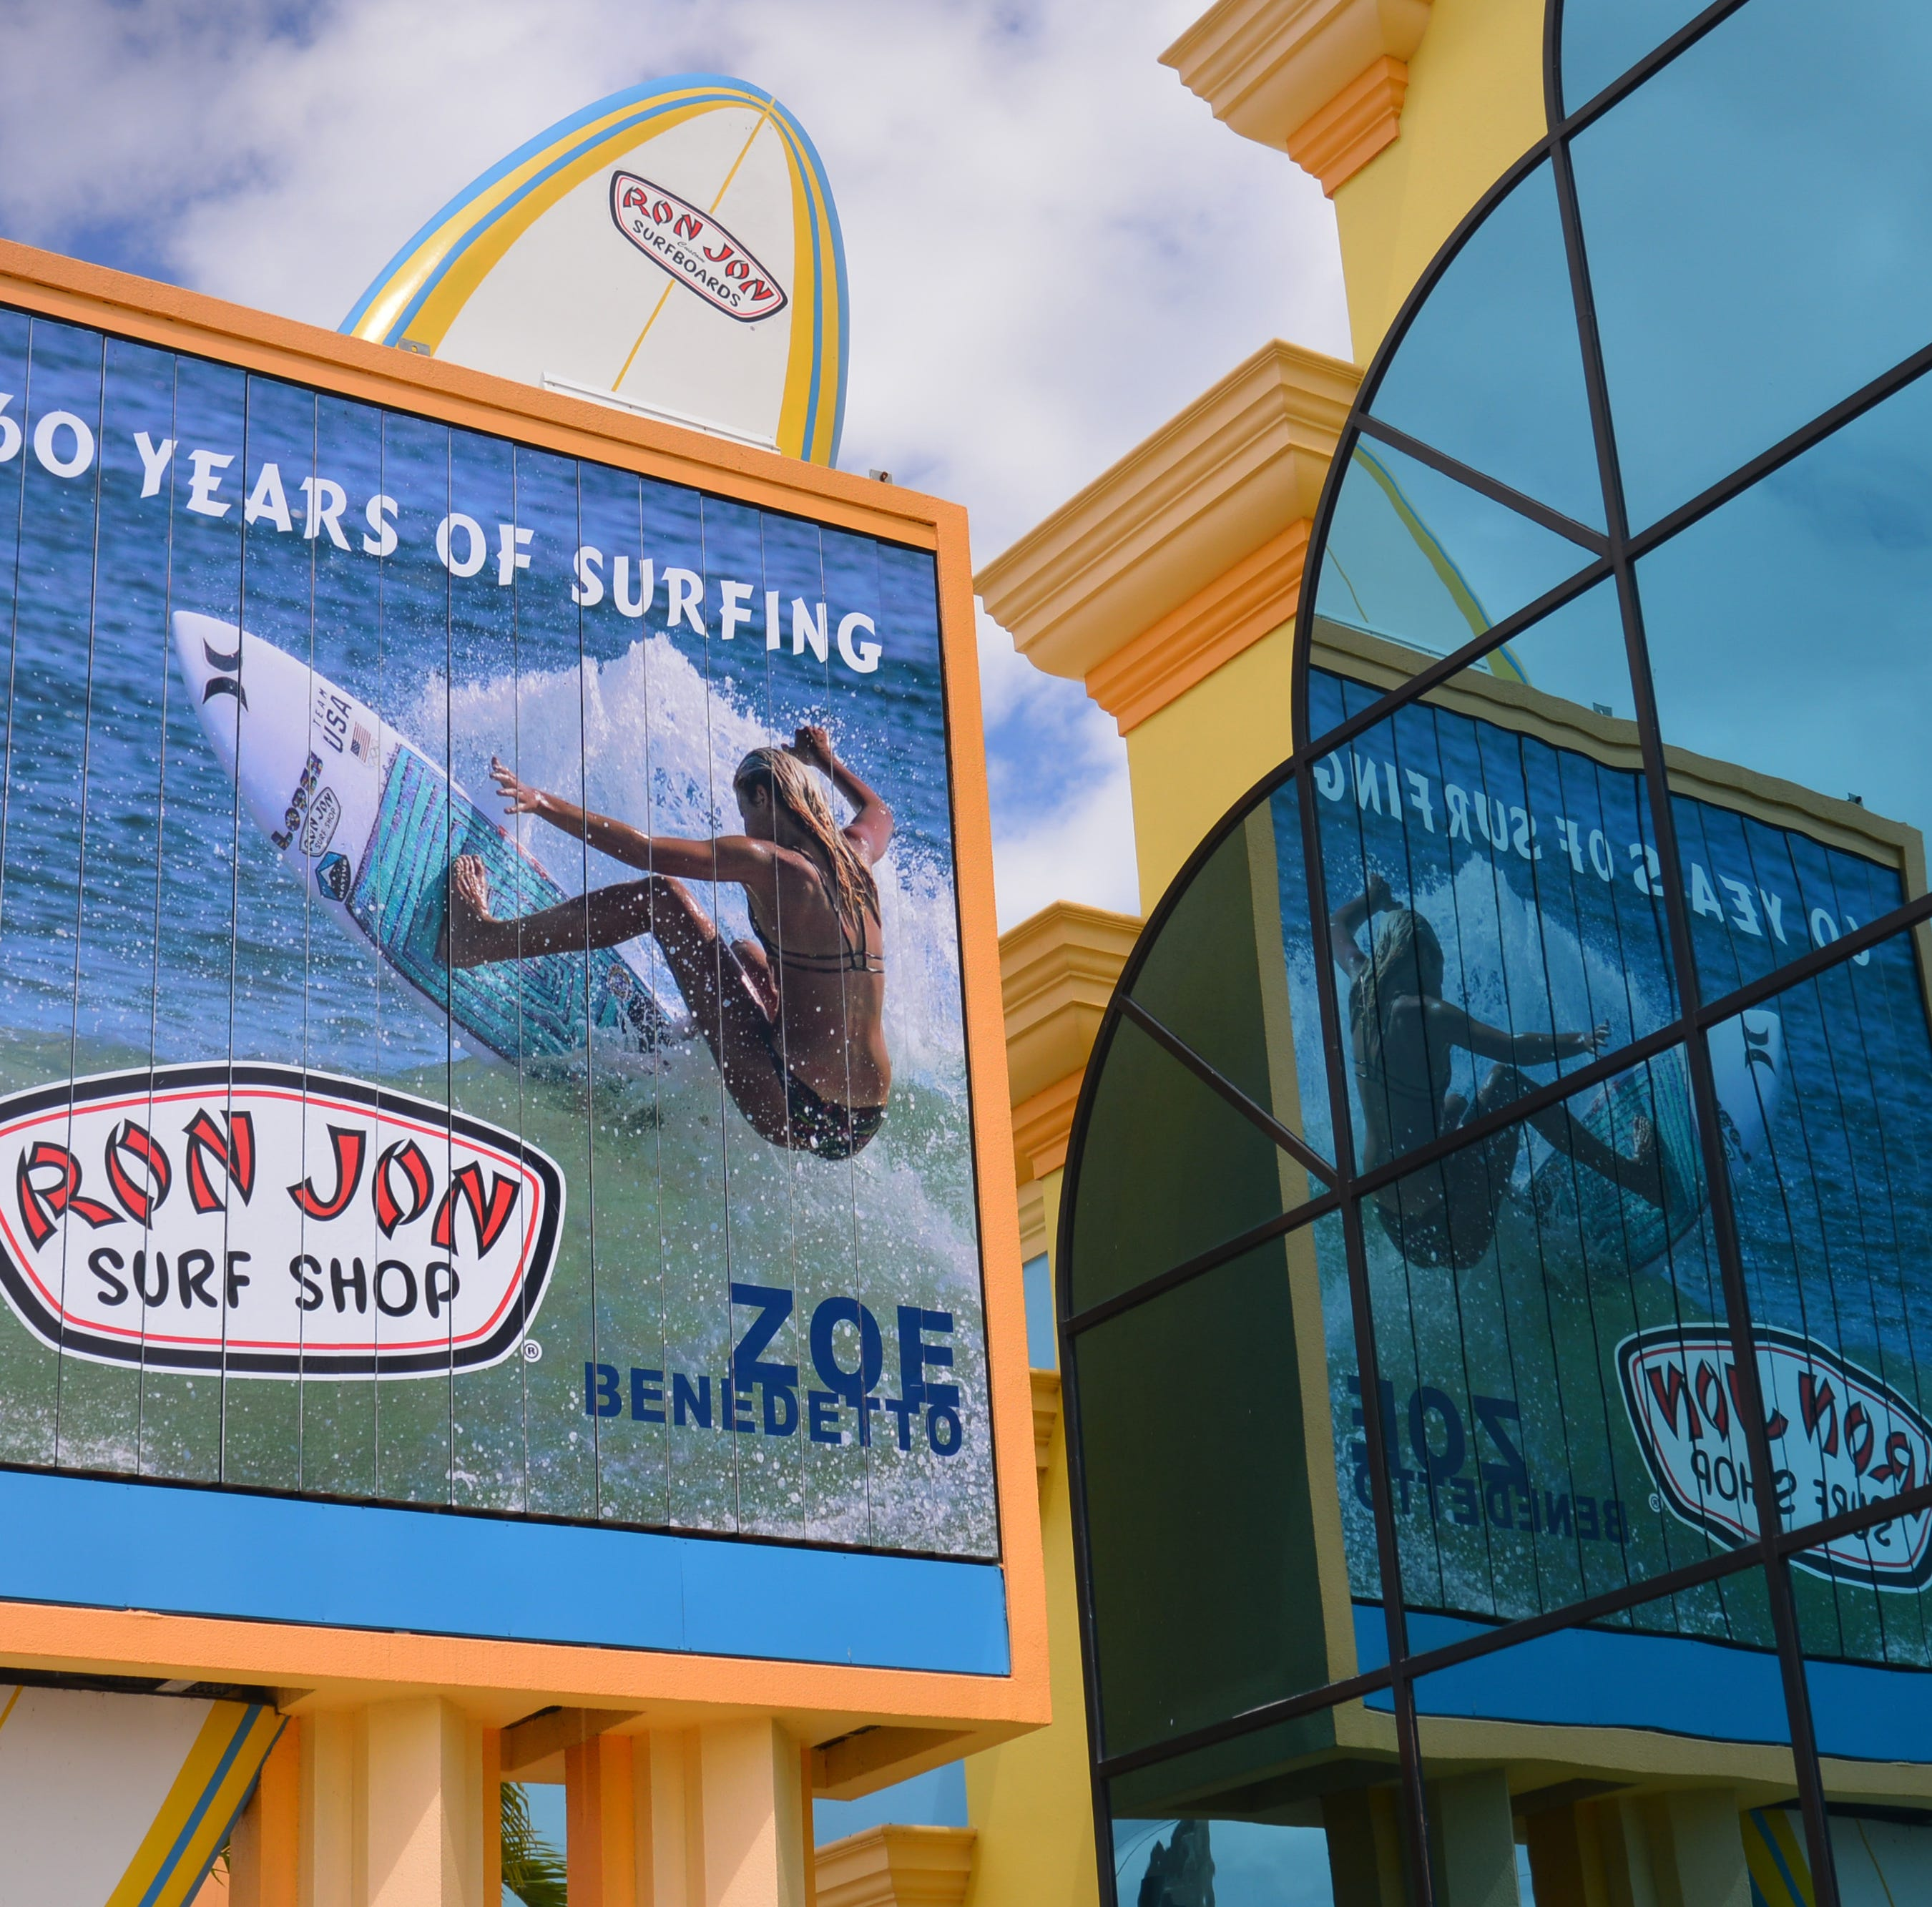 Ron Jon Surf Shop marks 60th anniversary of iconic East Coast beach lifestyle brand